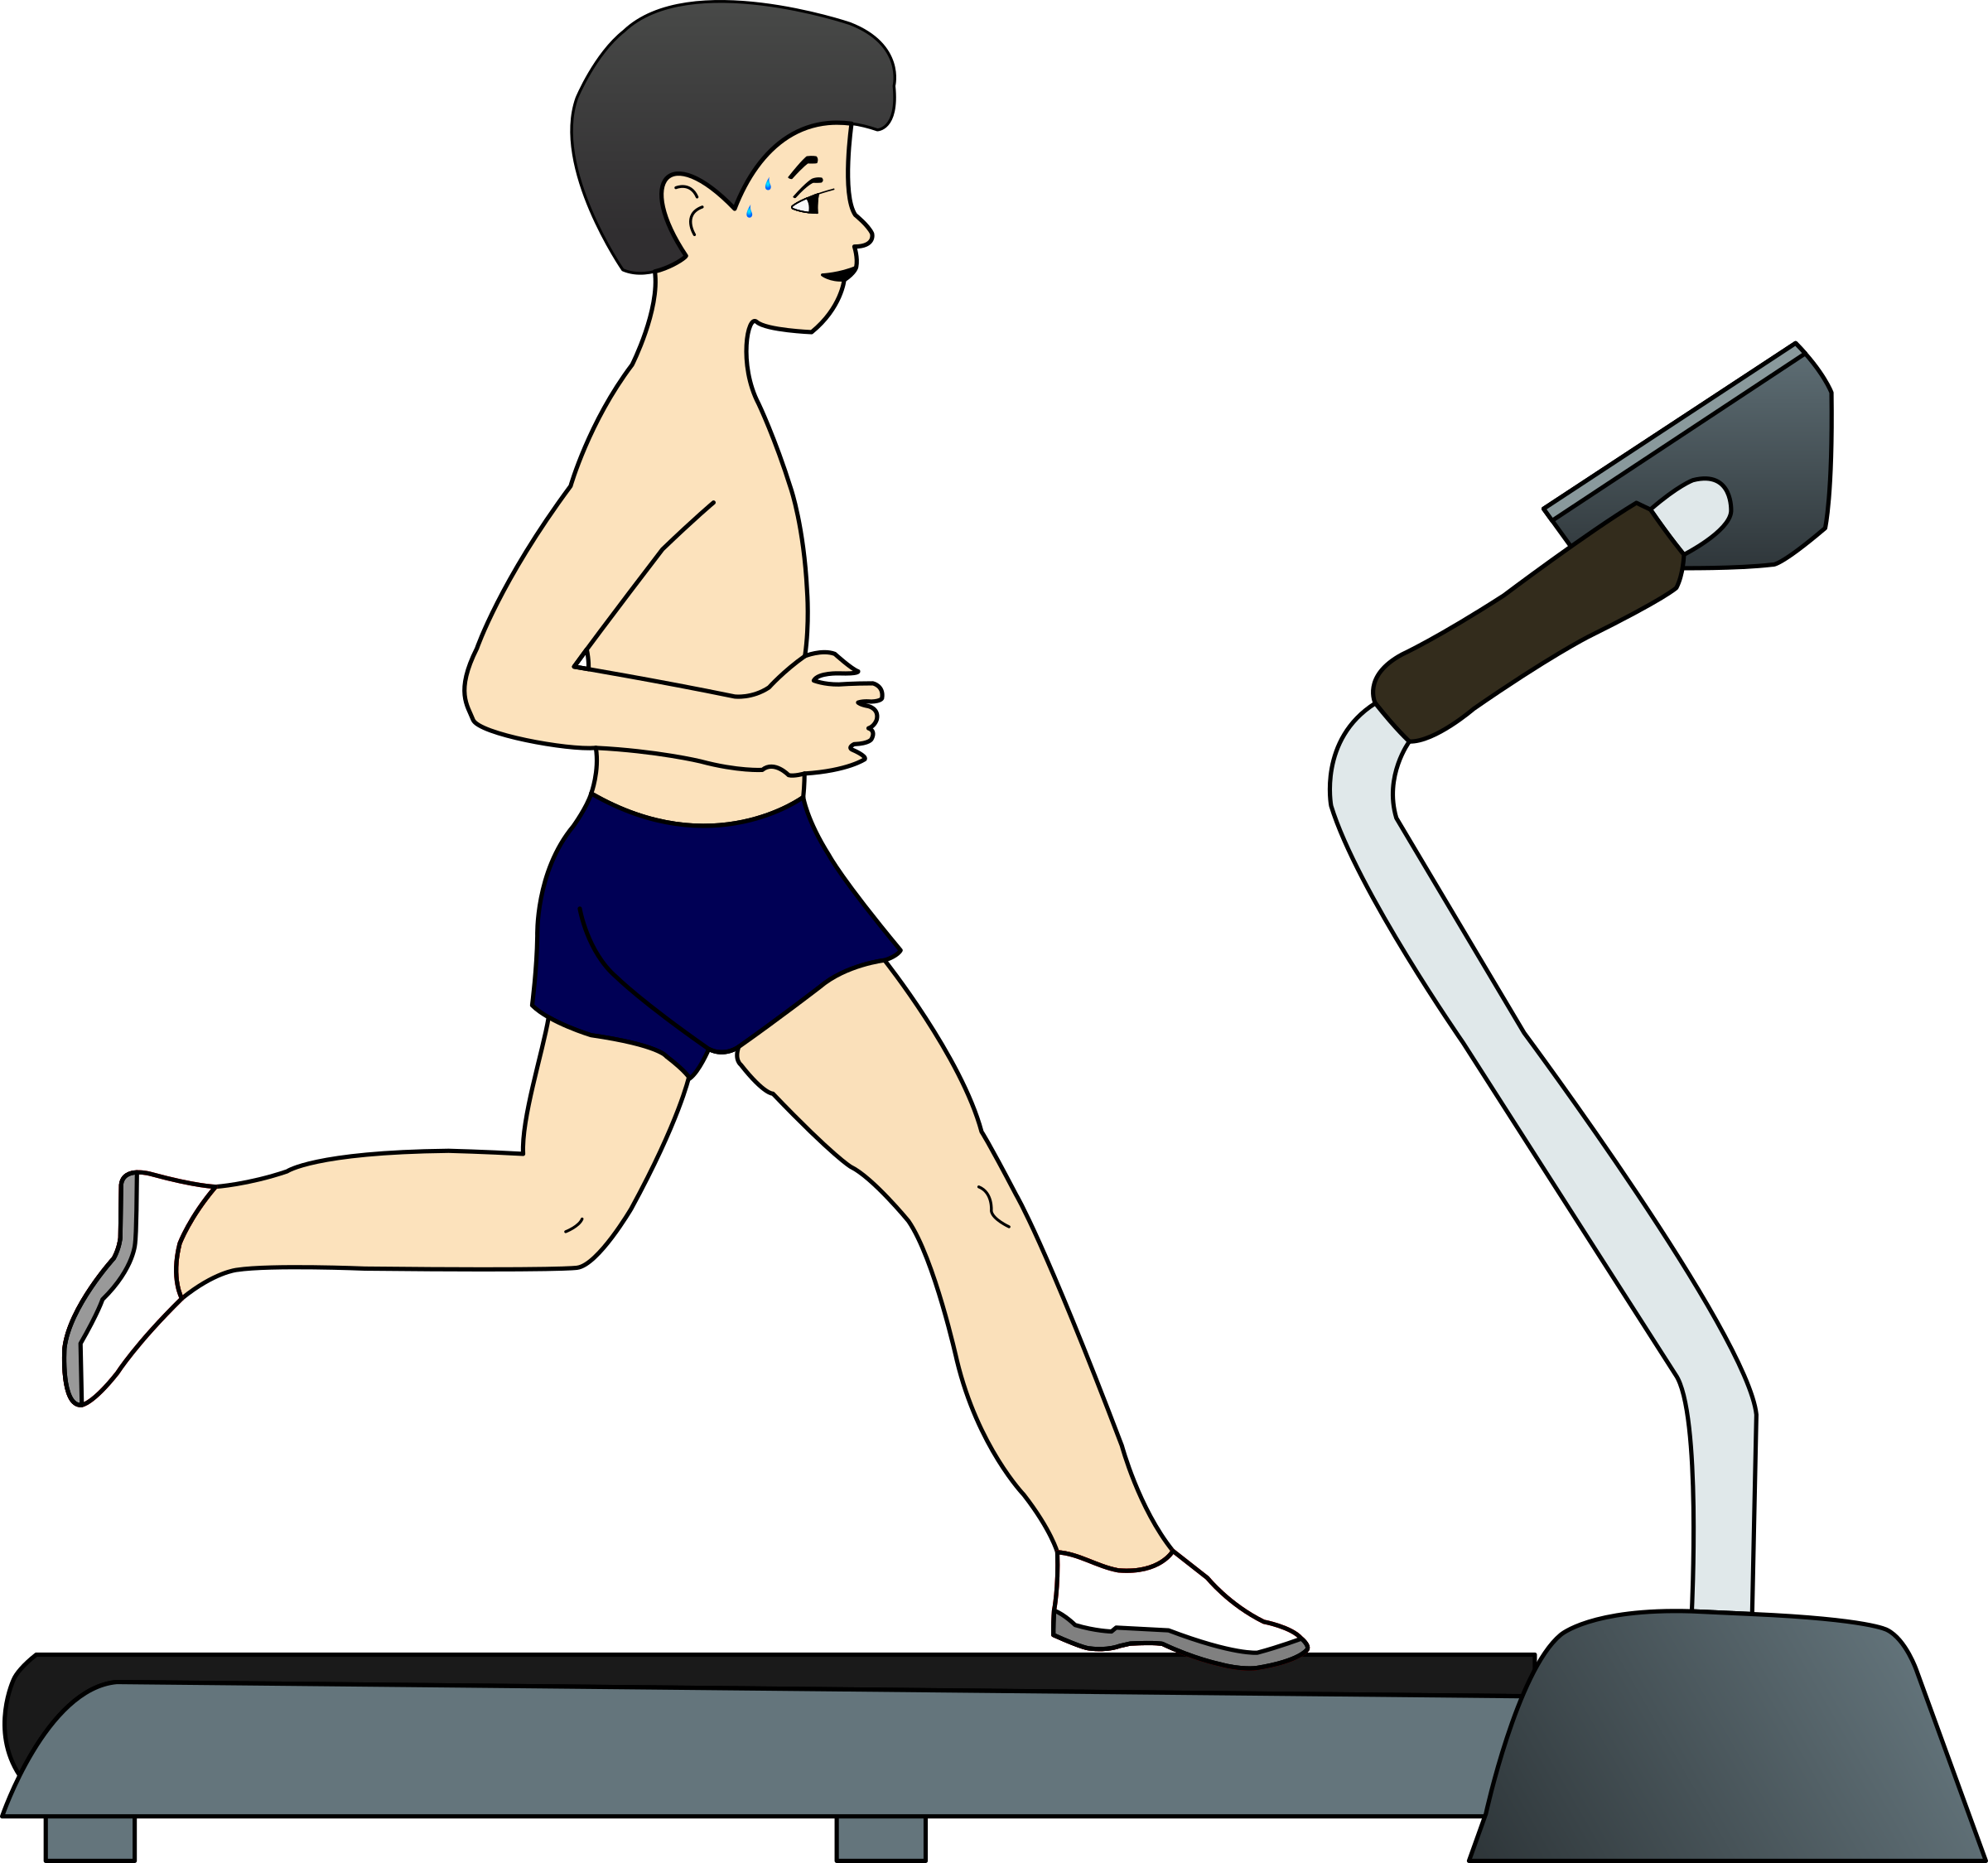 Boy running on treadmill by ActiveArt